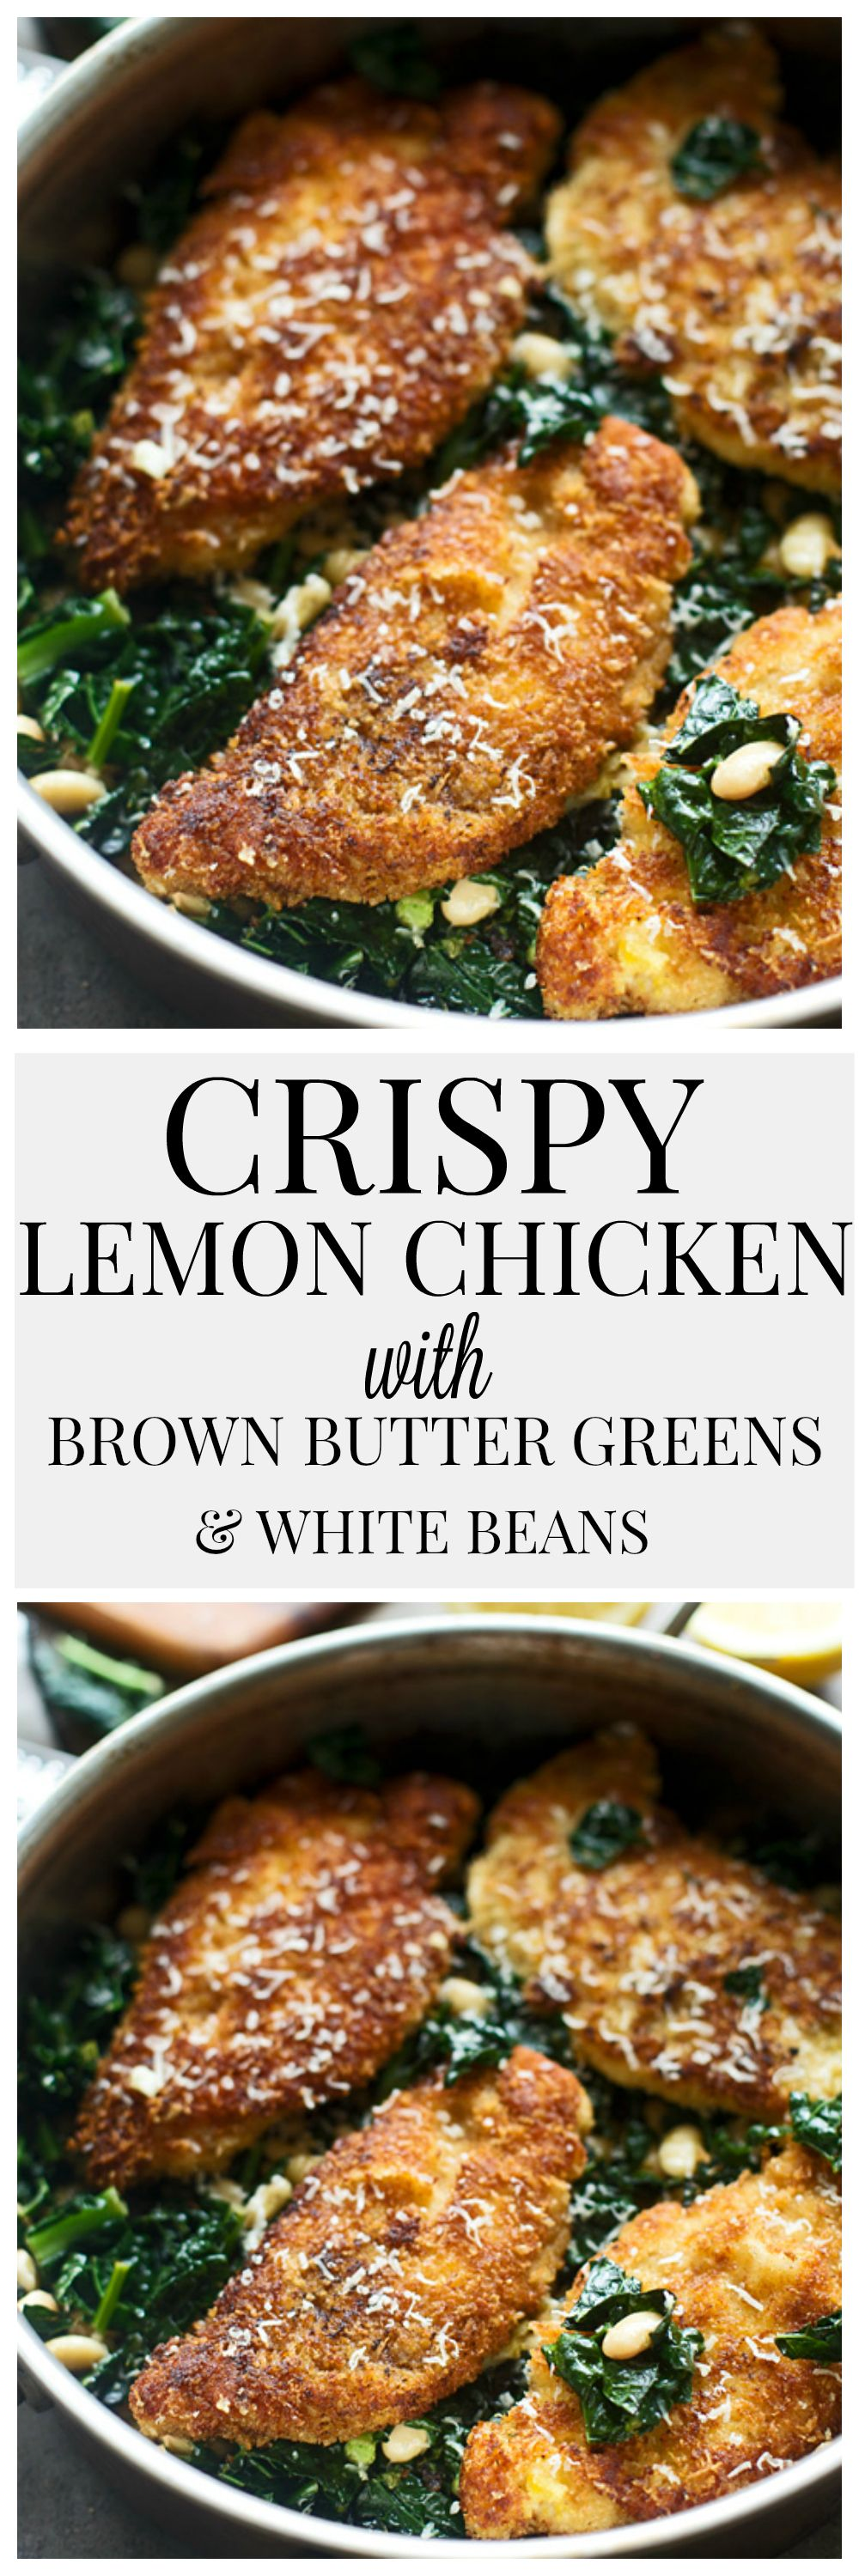 Crispy Lemon Chicken with Brown Butter Greens and White Beans